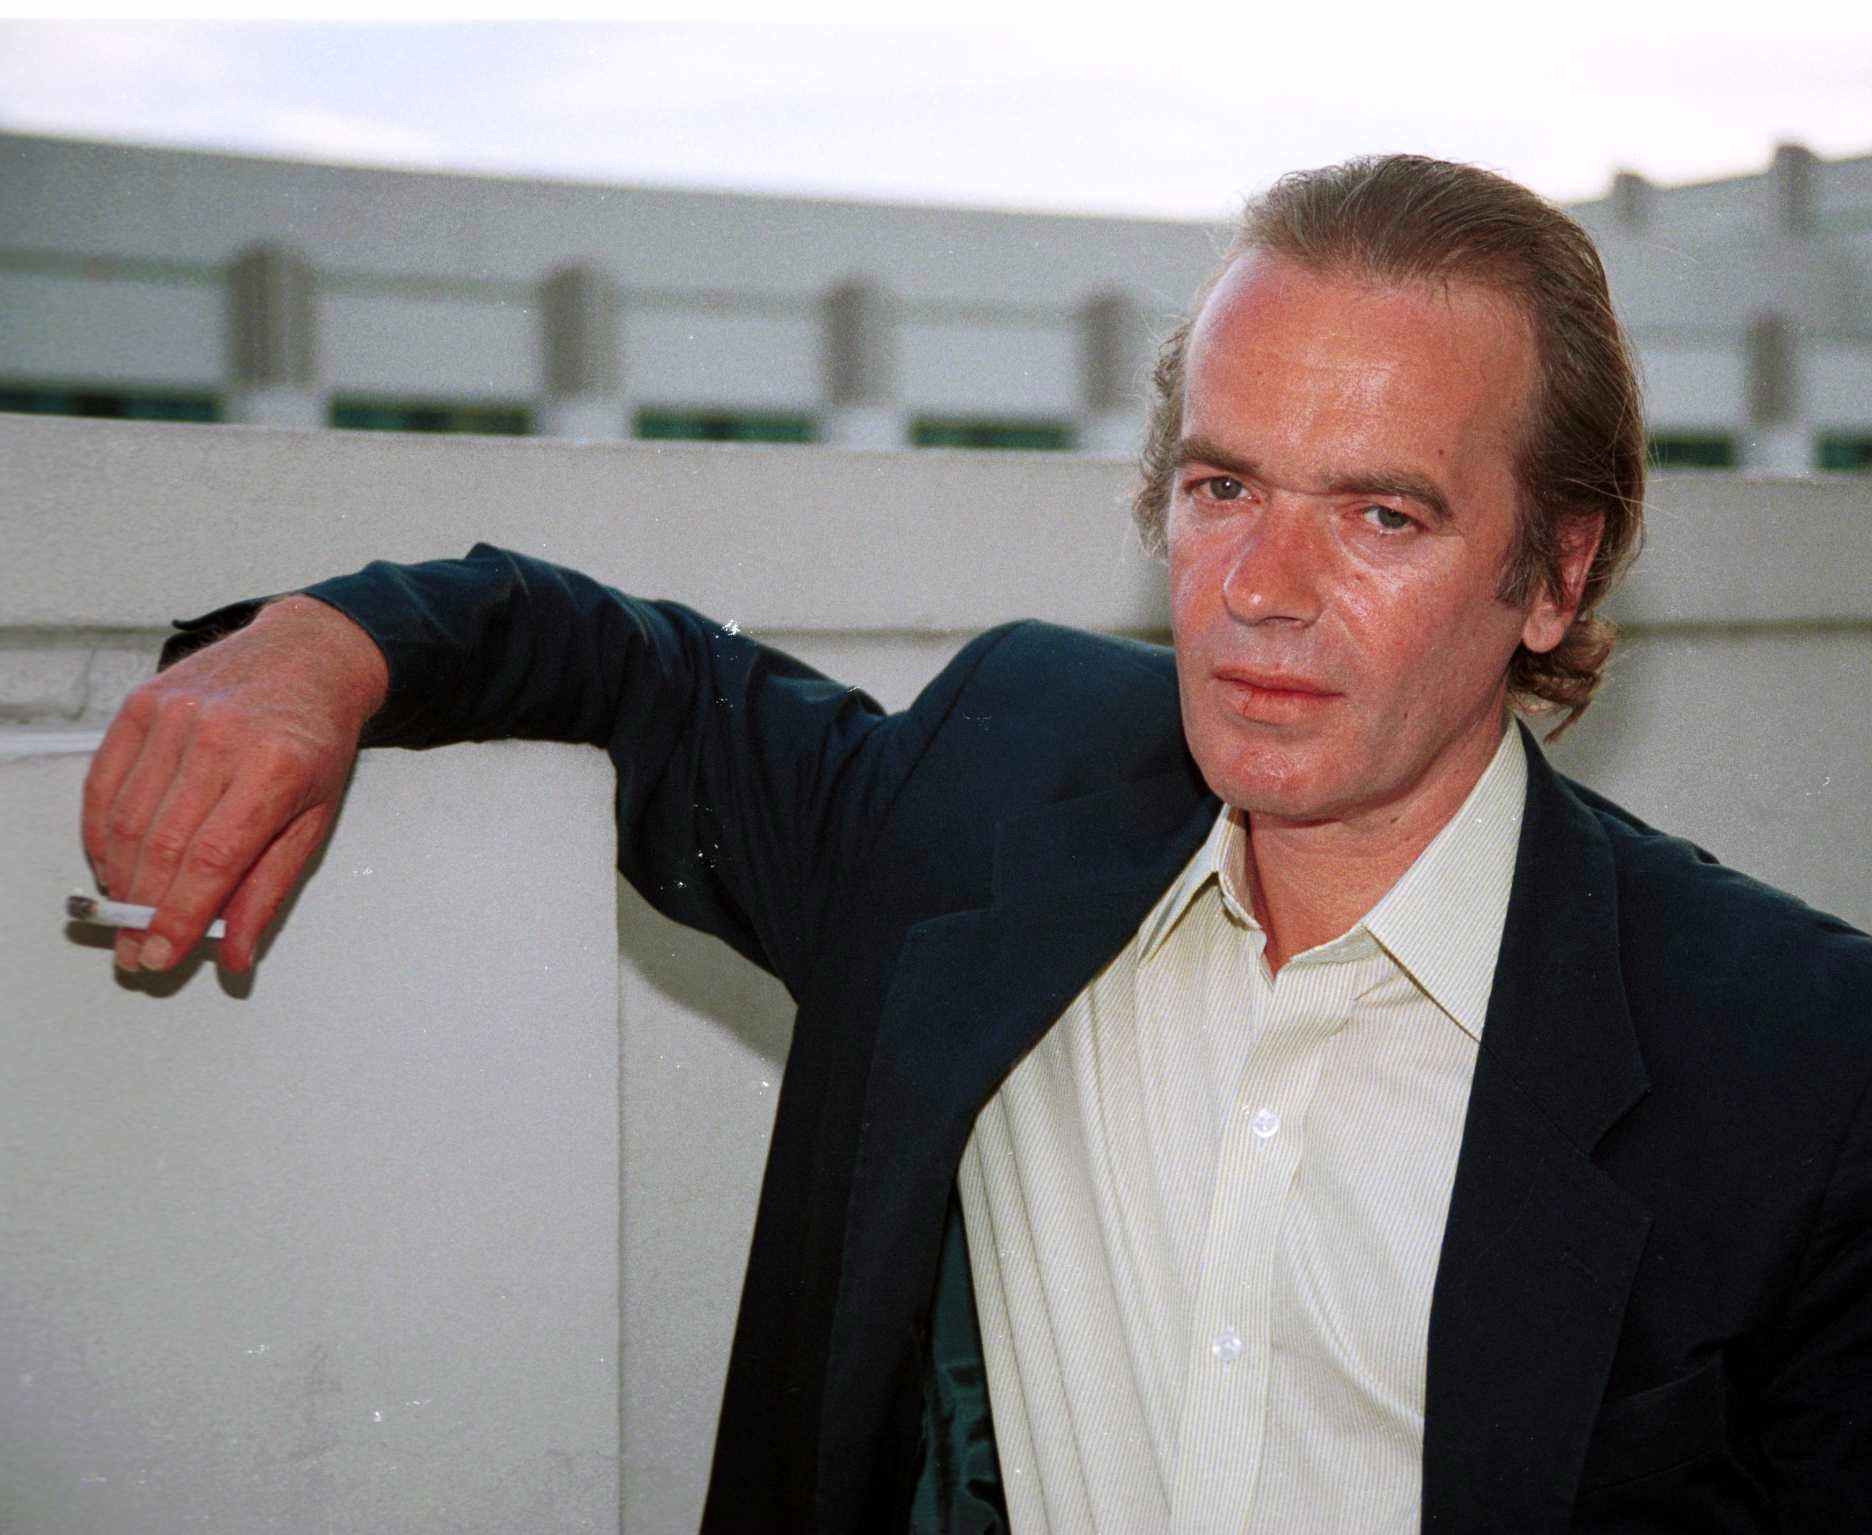 martin amis essays For more than thirty years, martin amis has turned his keen intellect and unrivaled prose loose on an astonishing range of topics now, at last, these incomparable essays have been gathered together in the rub of time.